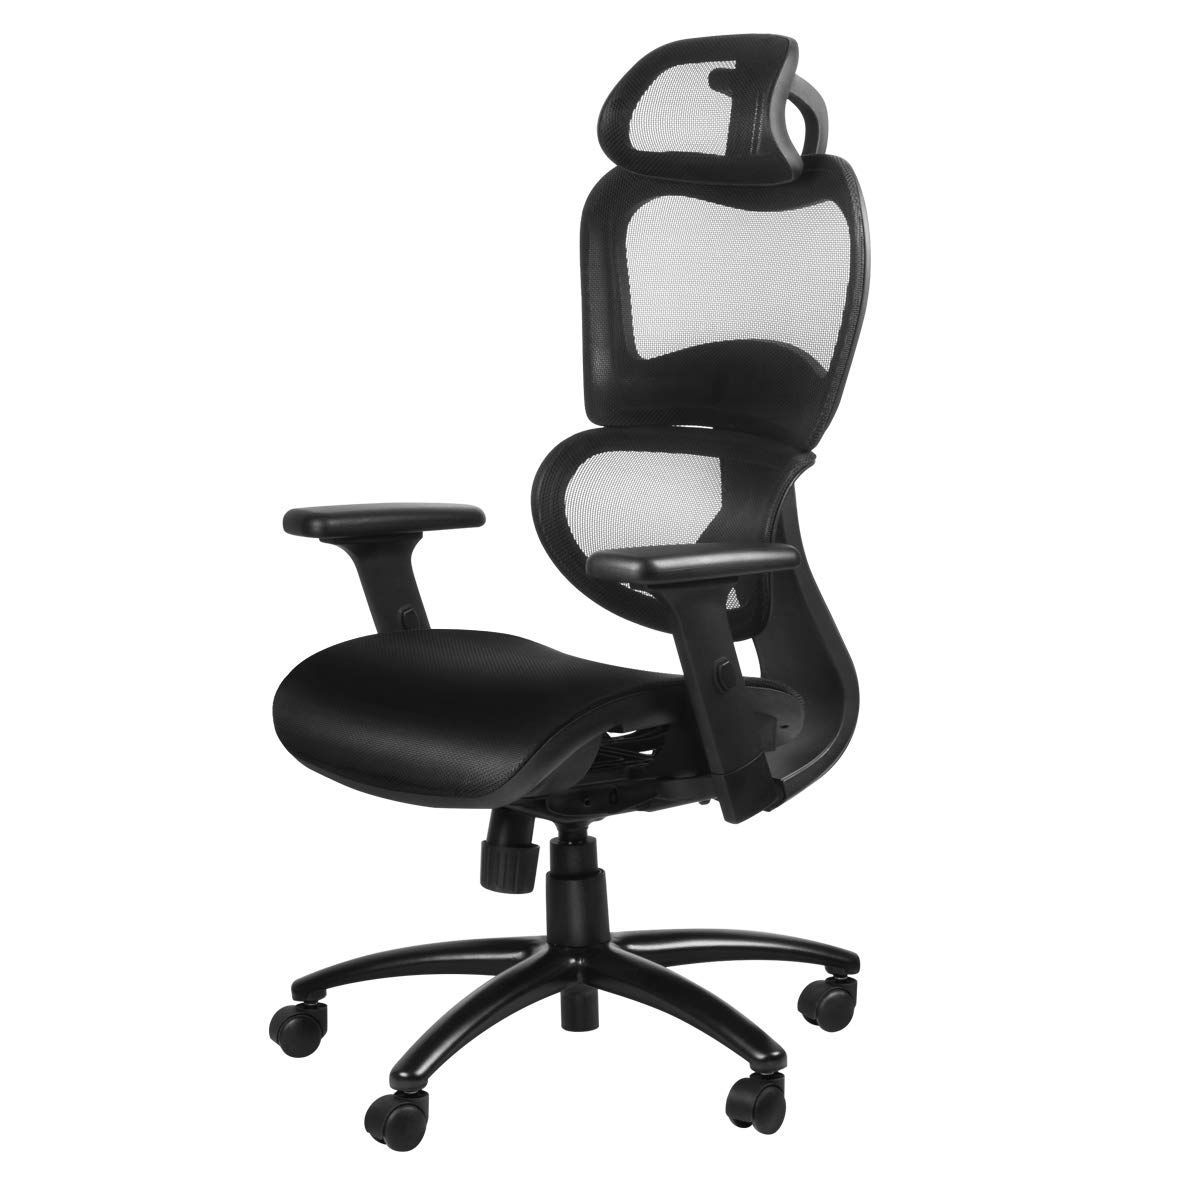 Duramont Ergonomic Office Chair With Lumbar Support High Back Executive Chair With Breathable Mesh Des In 2020 Office Chair Ergonomic Office Chair Ergonomic Office